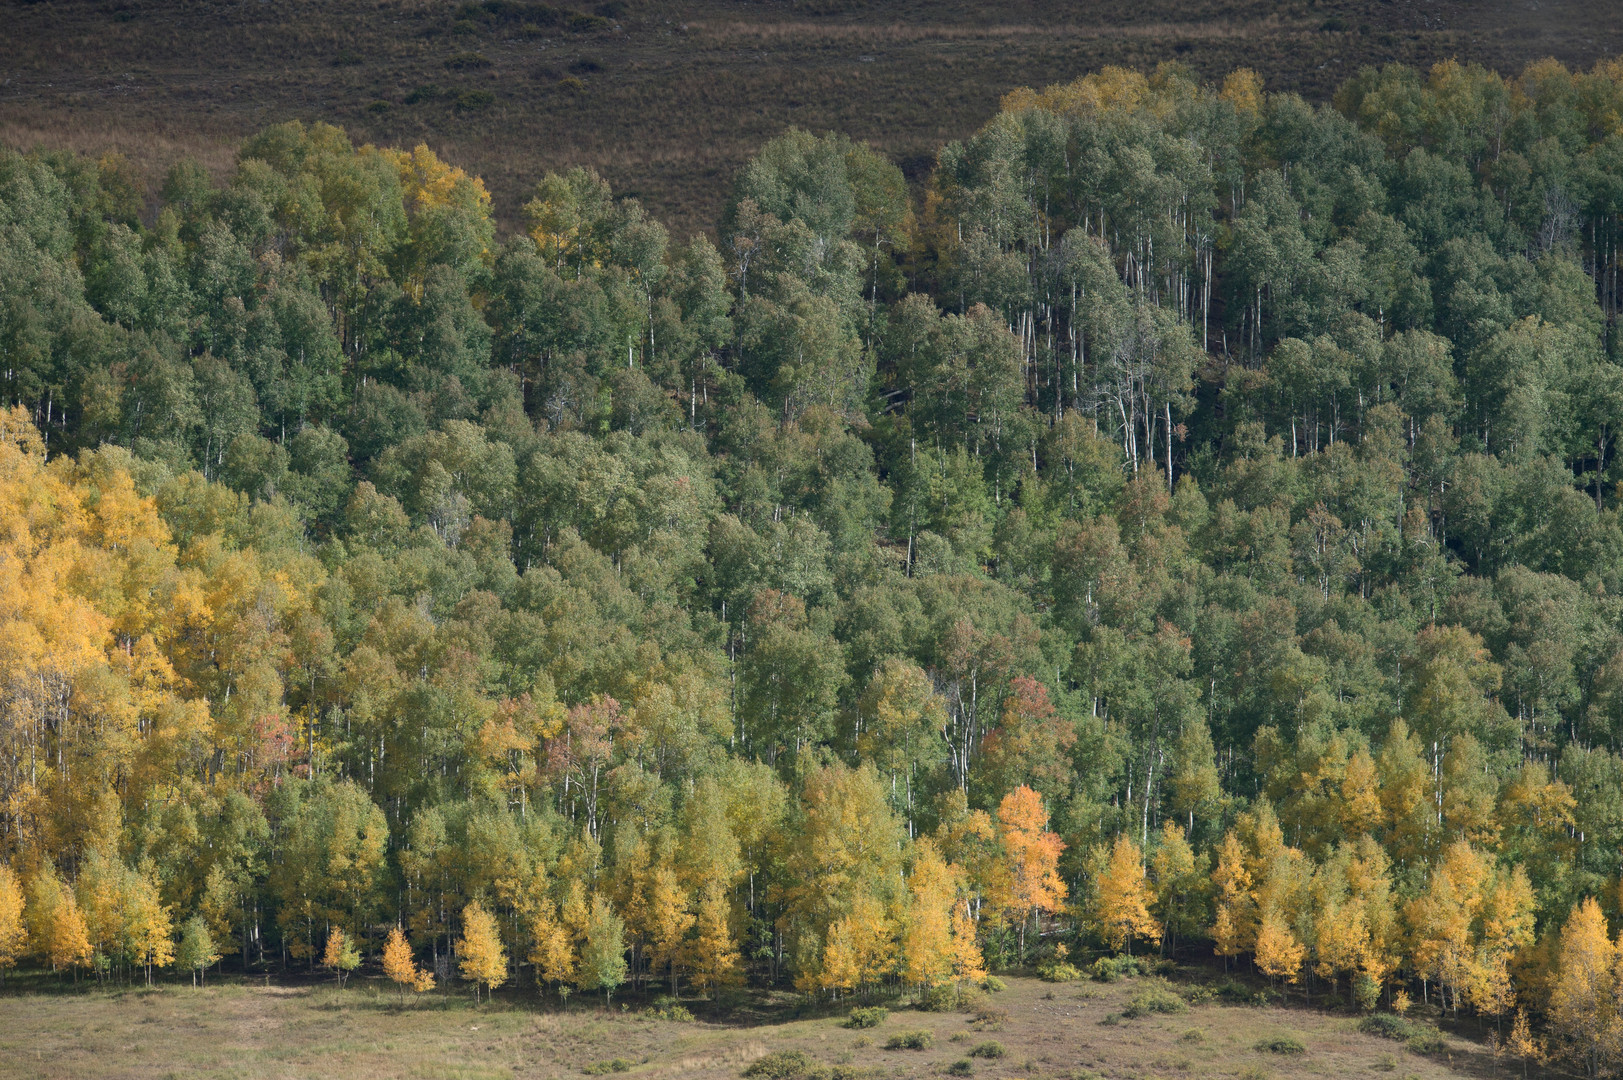 Aspen trees begin to shift into their fall coloration near Crested Butte, Colorado on Friday, September 22, 2017.